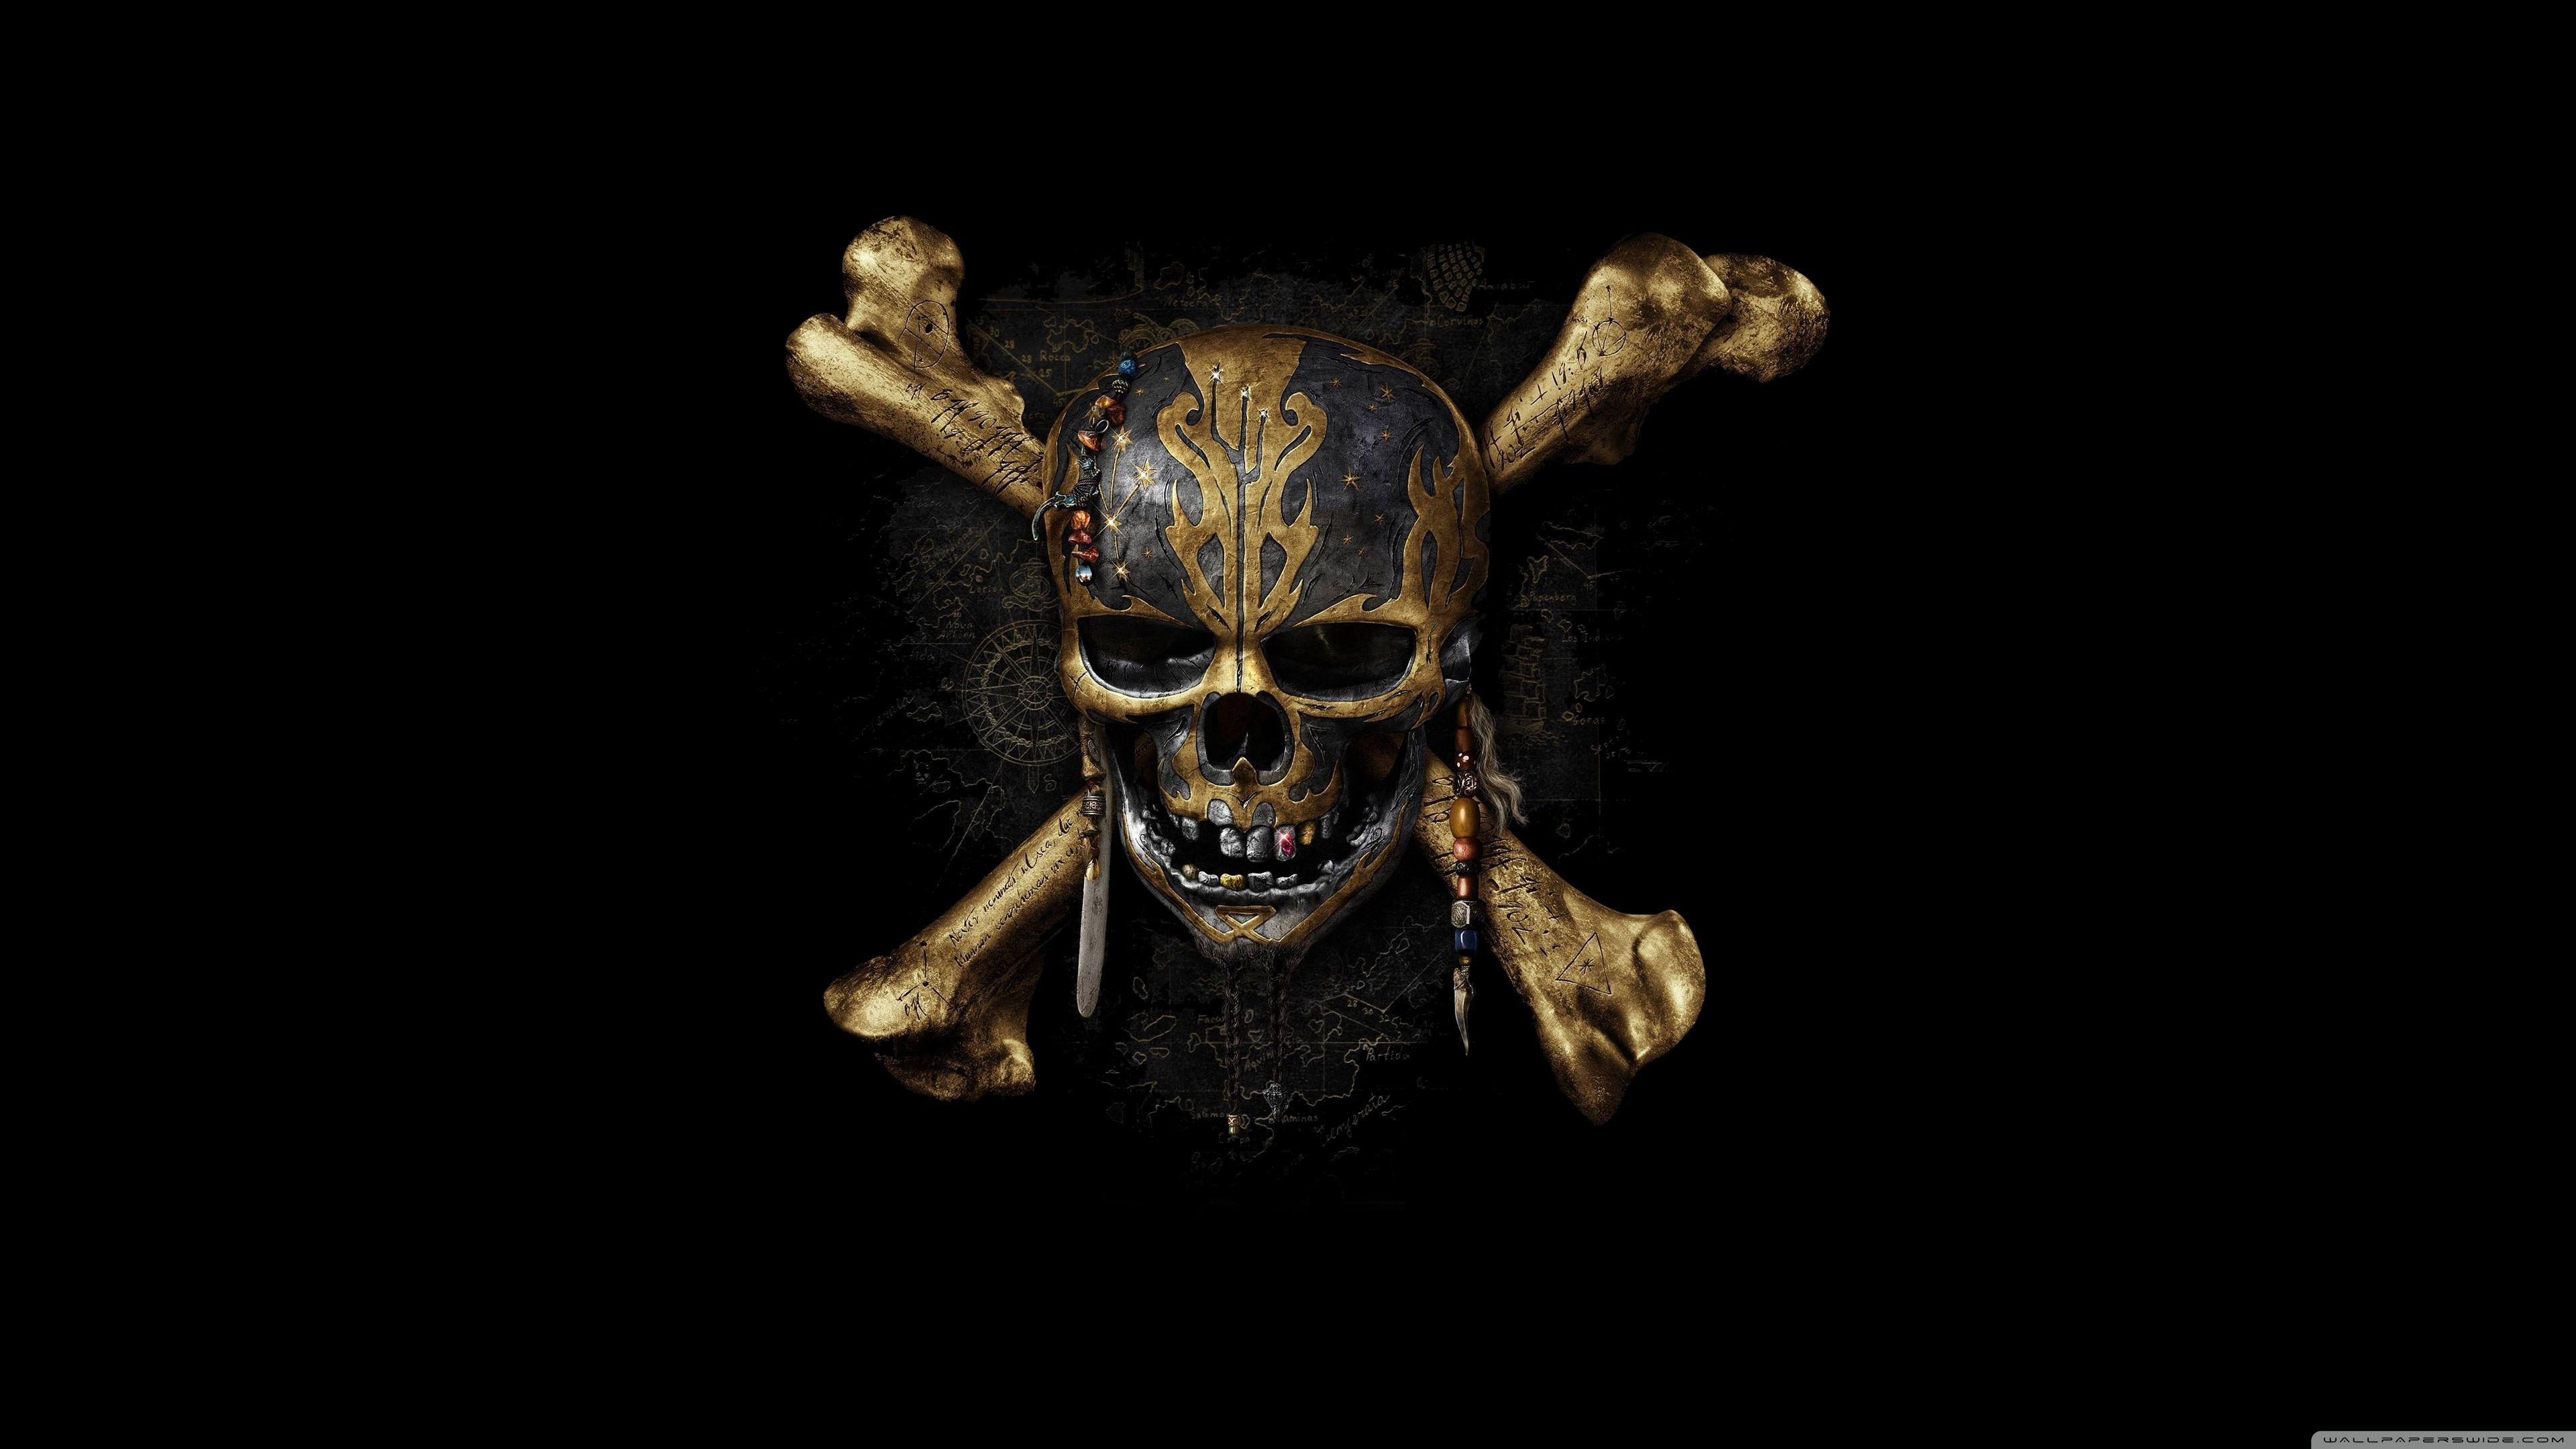 WallpapersWide.com | Pirates Of The Caribbean HD Desktop ...